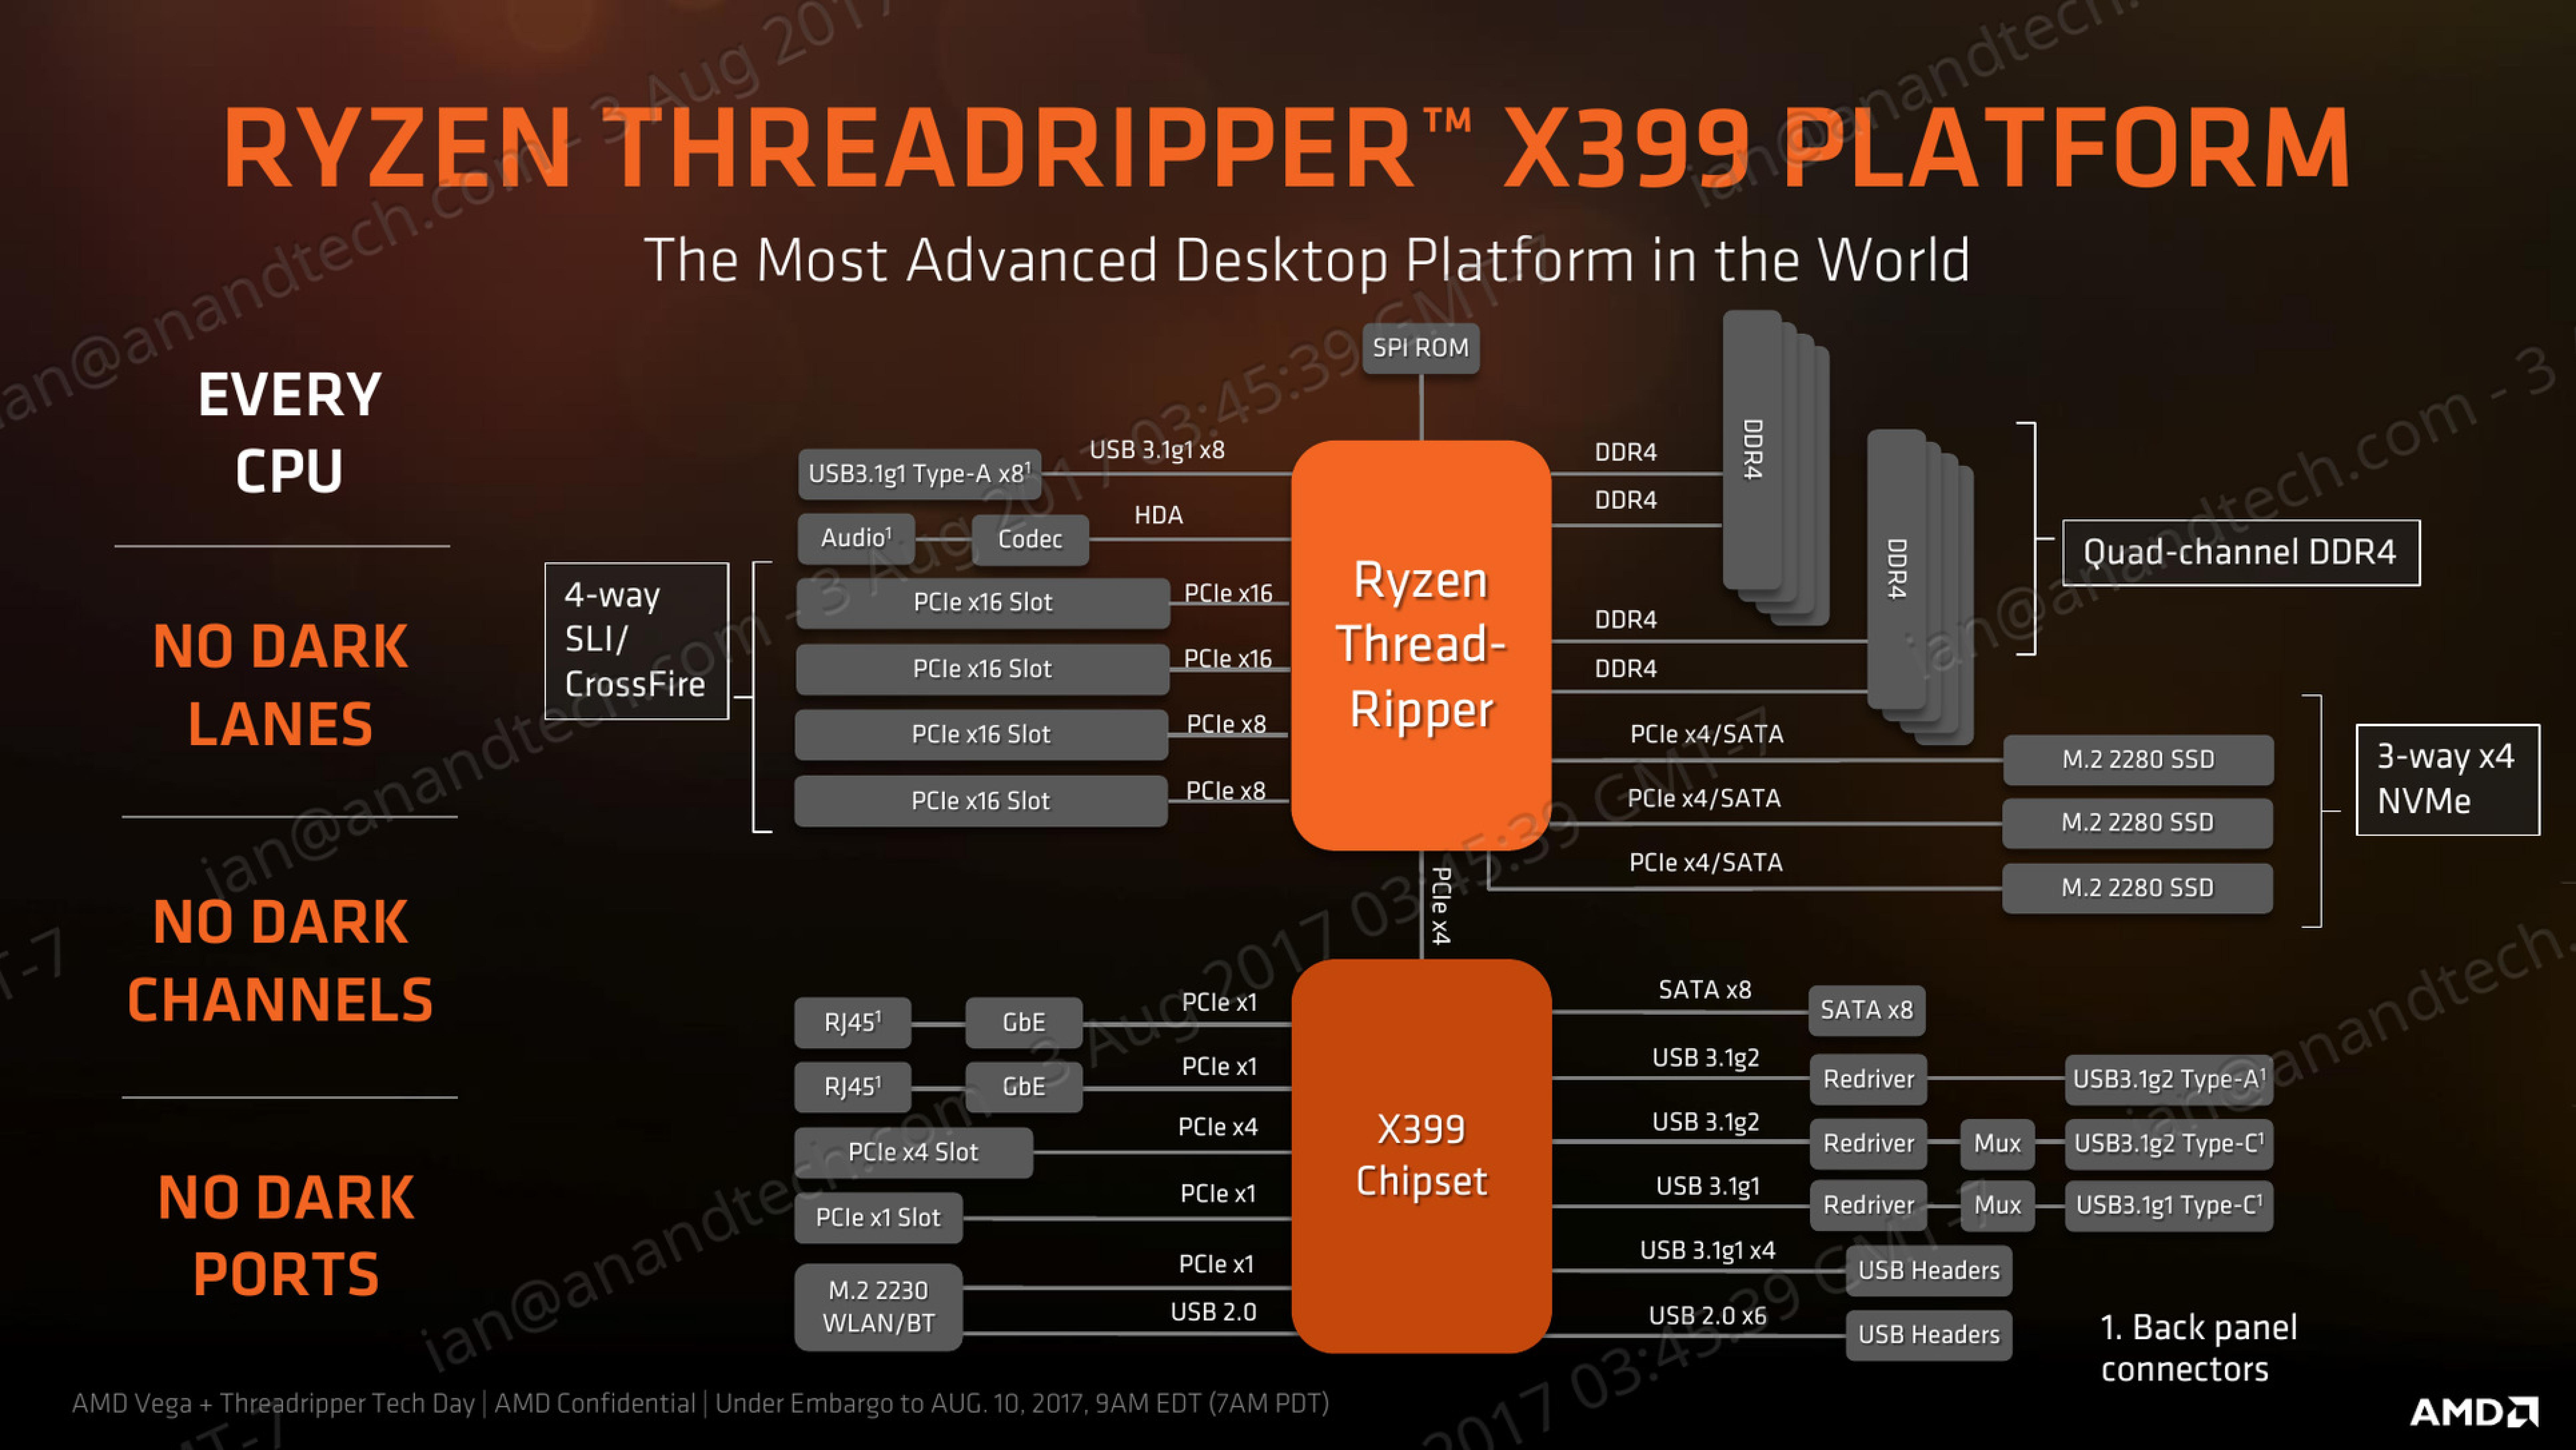 An Amd Threadripper X399 Motherboard Overview A Quick Look At Seven Products